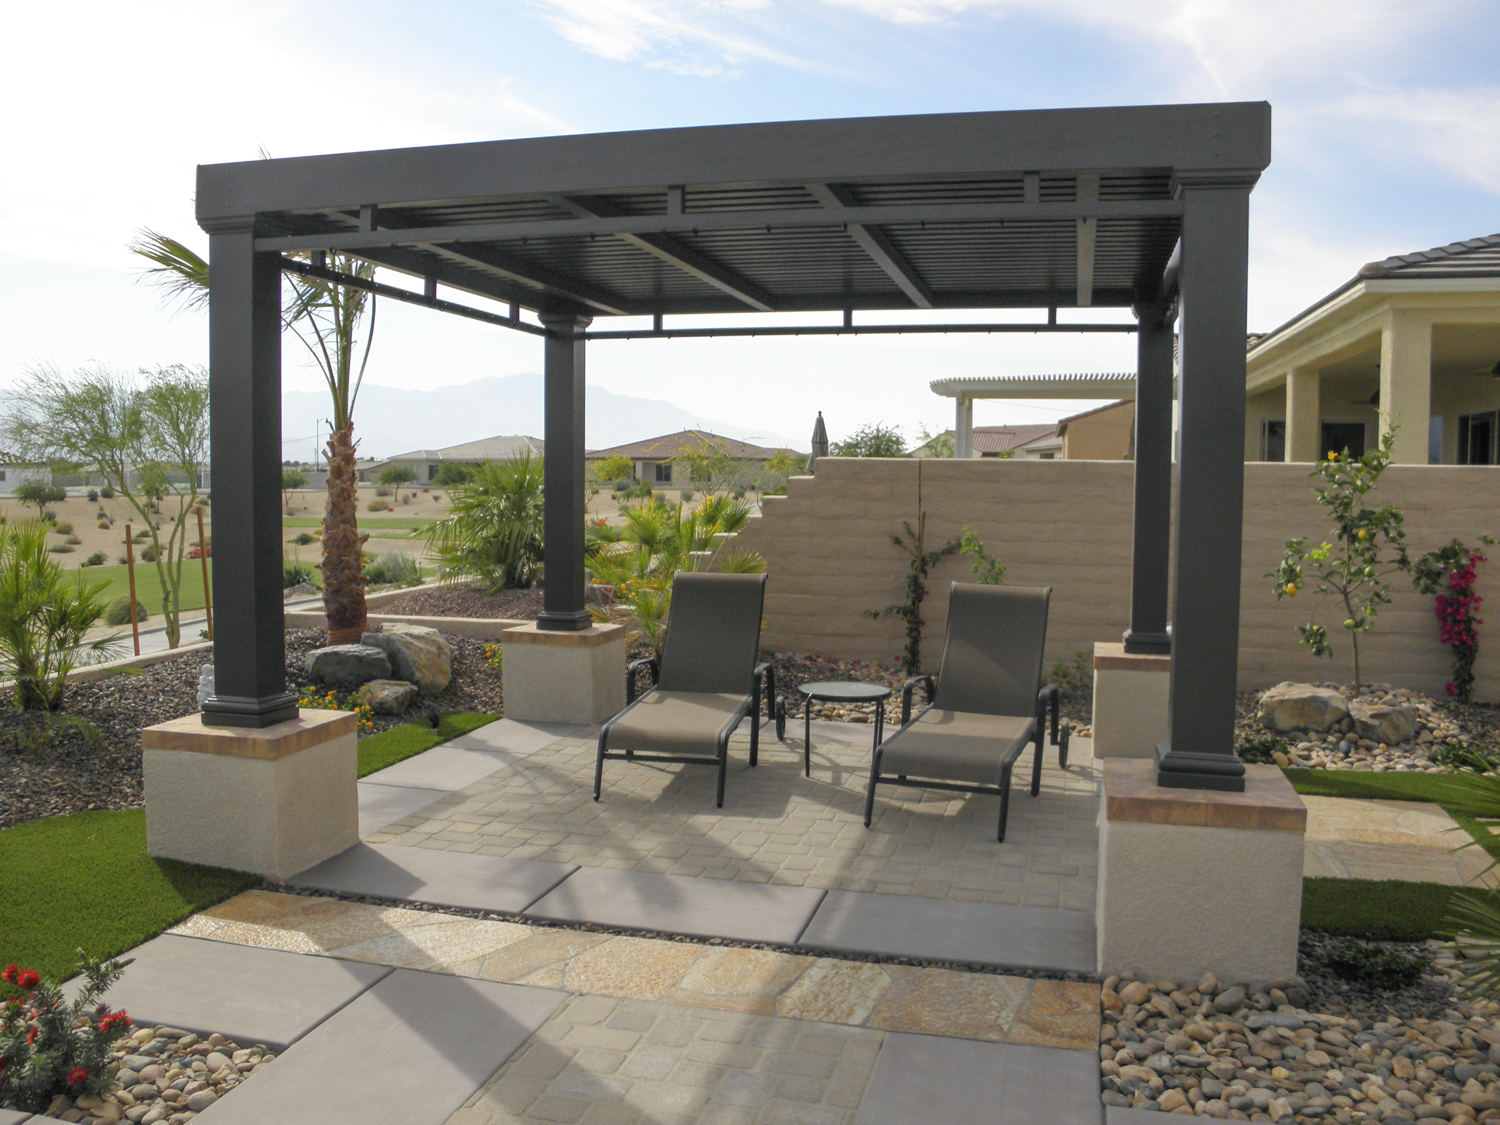 Patio Cover Ideas | Shade Structures | Patio Covers ... on Backyard Patio Cover Ideas  id=55697